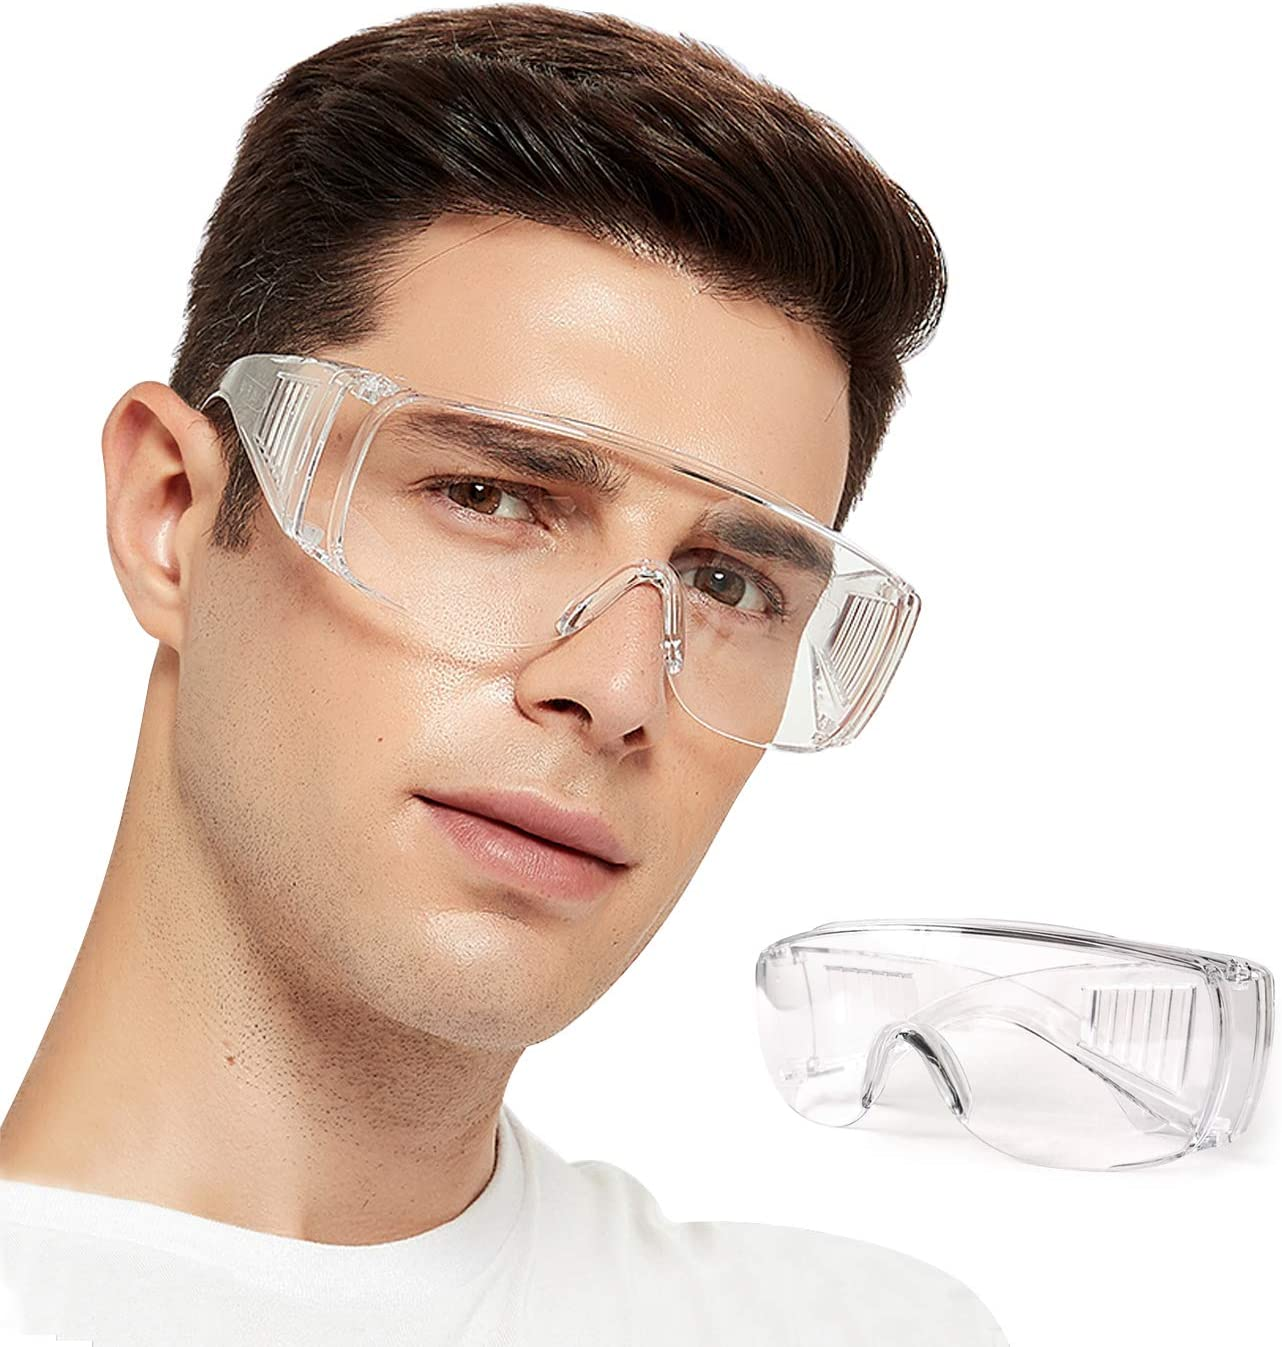 DJM 4.0 Safety Glasses Over Glasses Goggles Protective Eyewear for Work - Anti Fog Shooting Glasses Eye Protection with Clear Vision, Scratch & UV Resistant Safety Glasses for Men Women Lab Clear